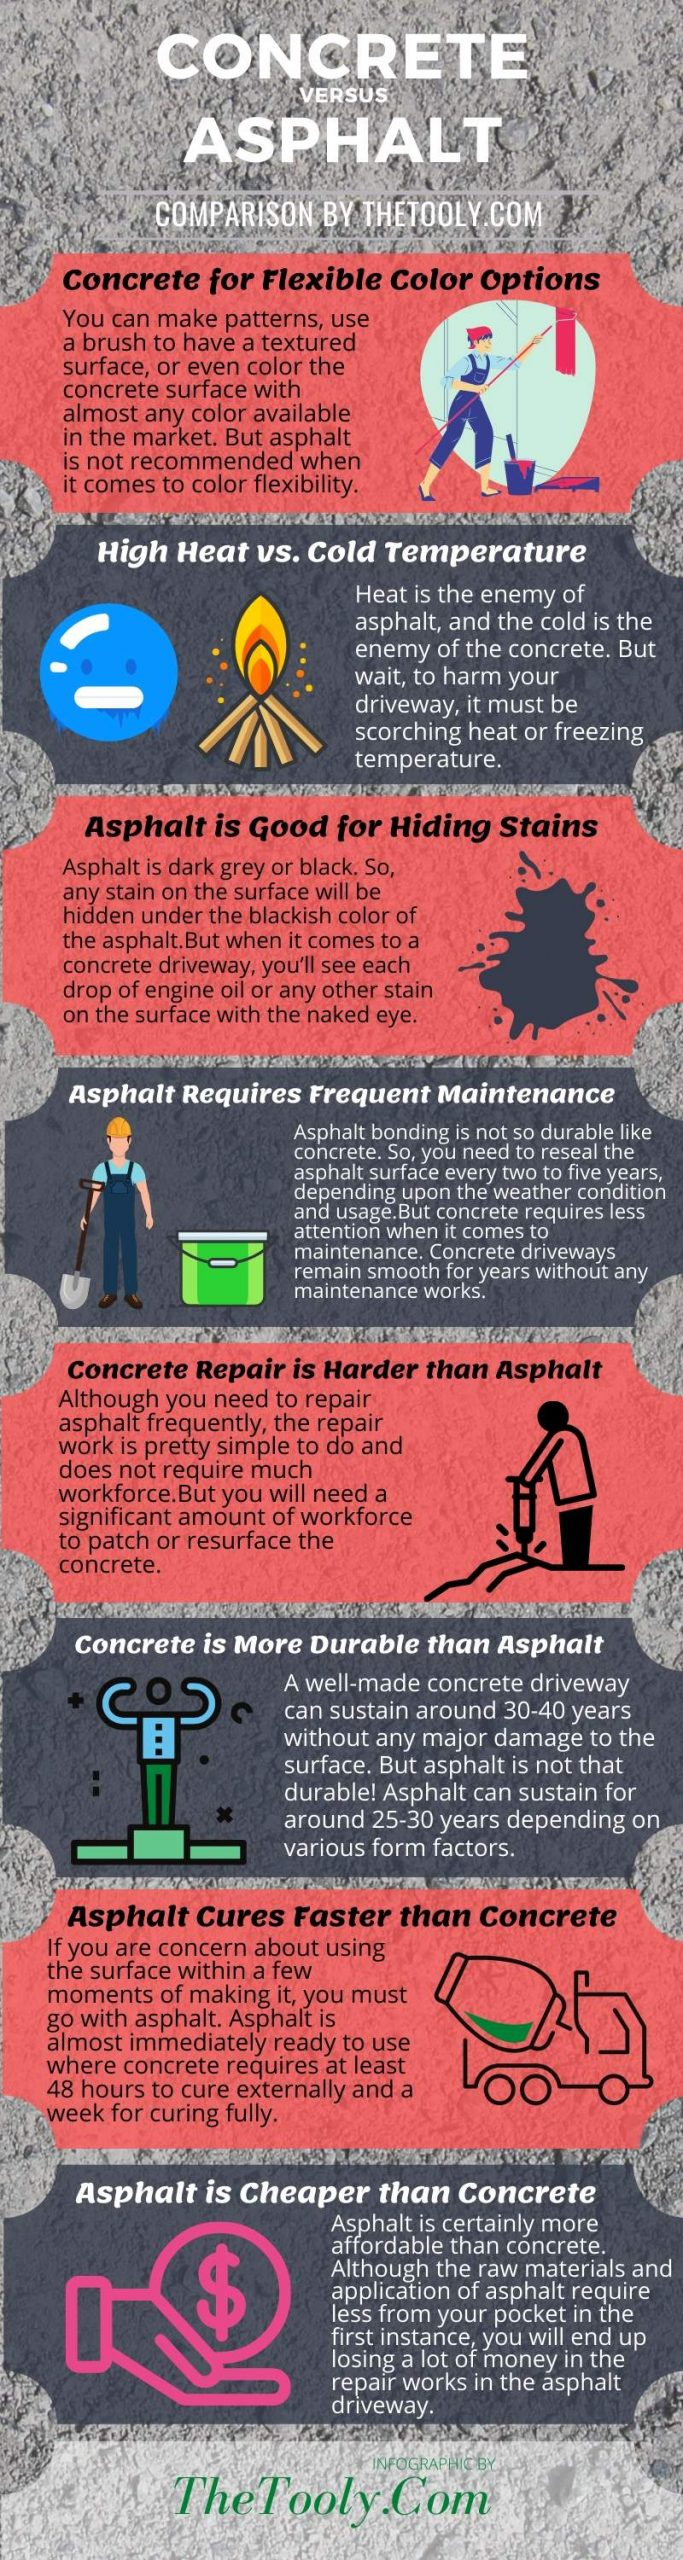 asphalt vs concrete infographic